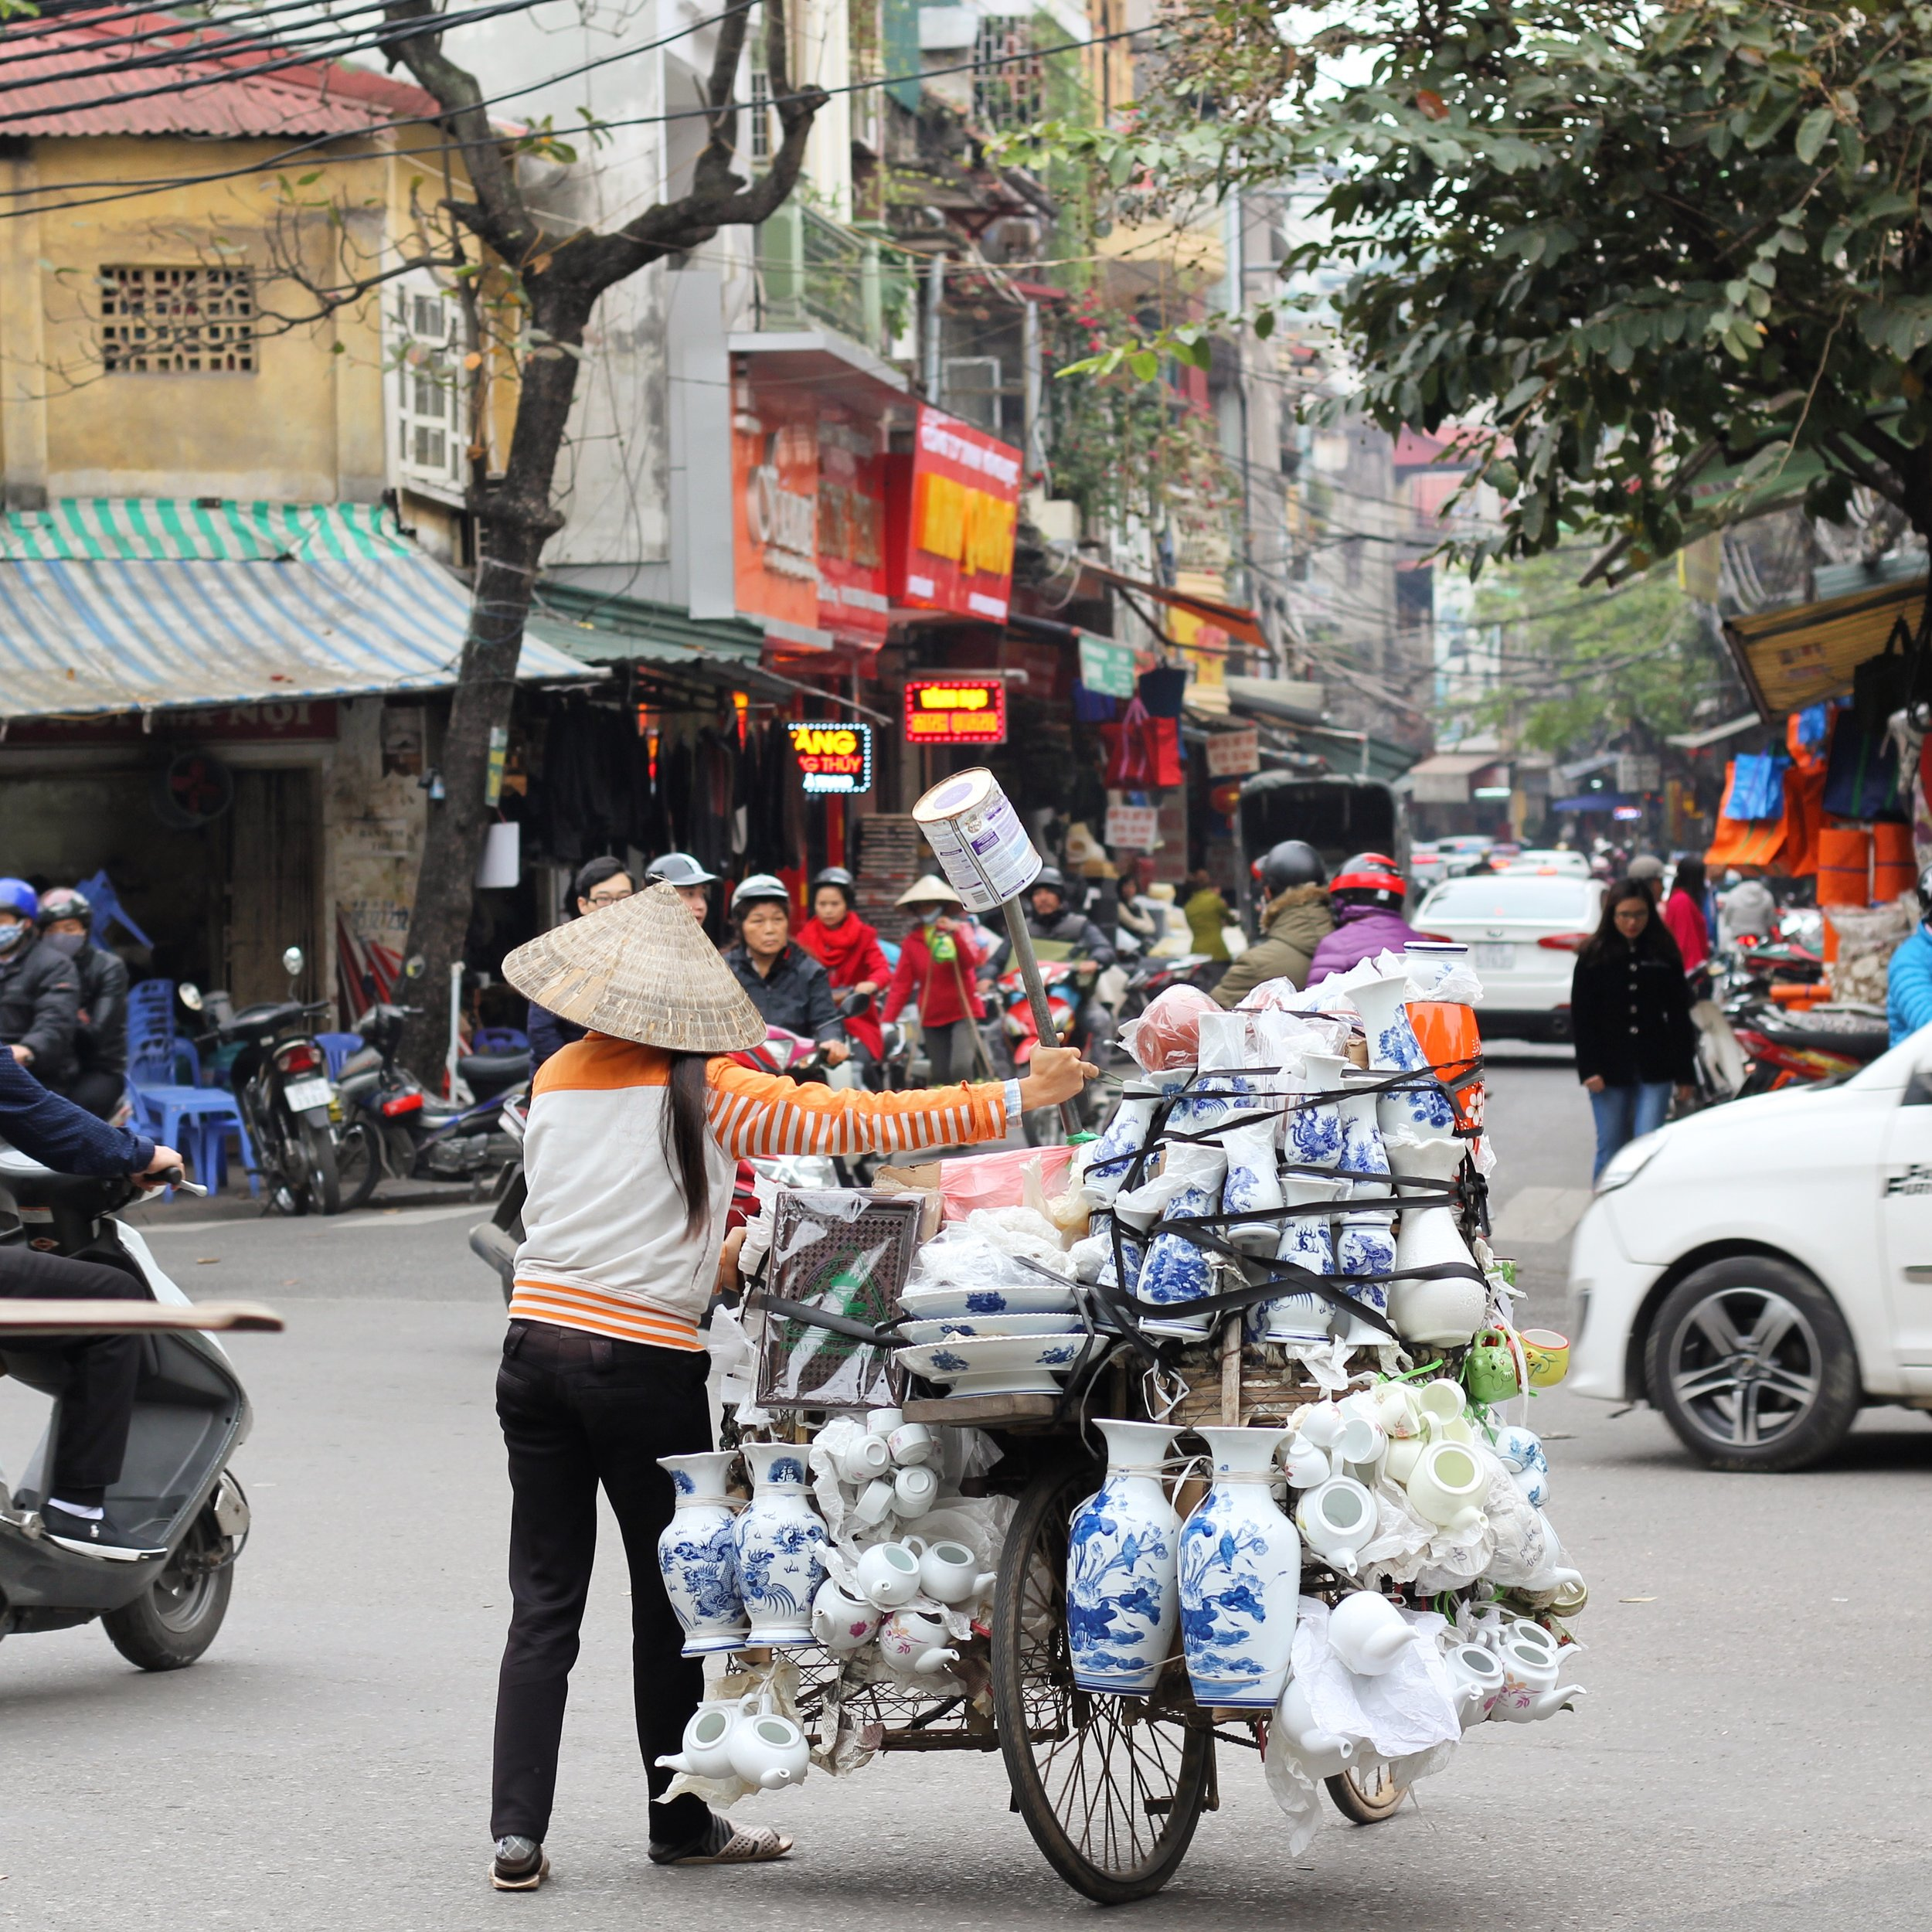 A woman bravely shuttling her pottery cart into the bustling street traffic.